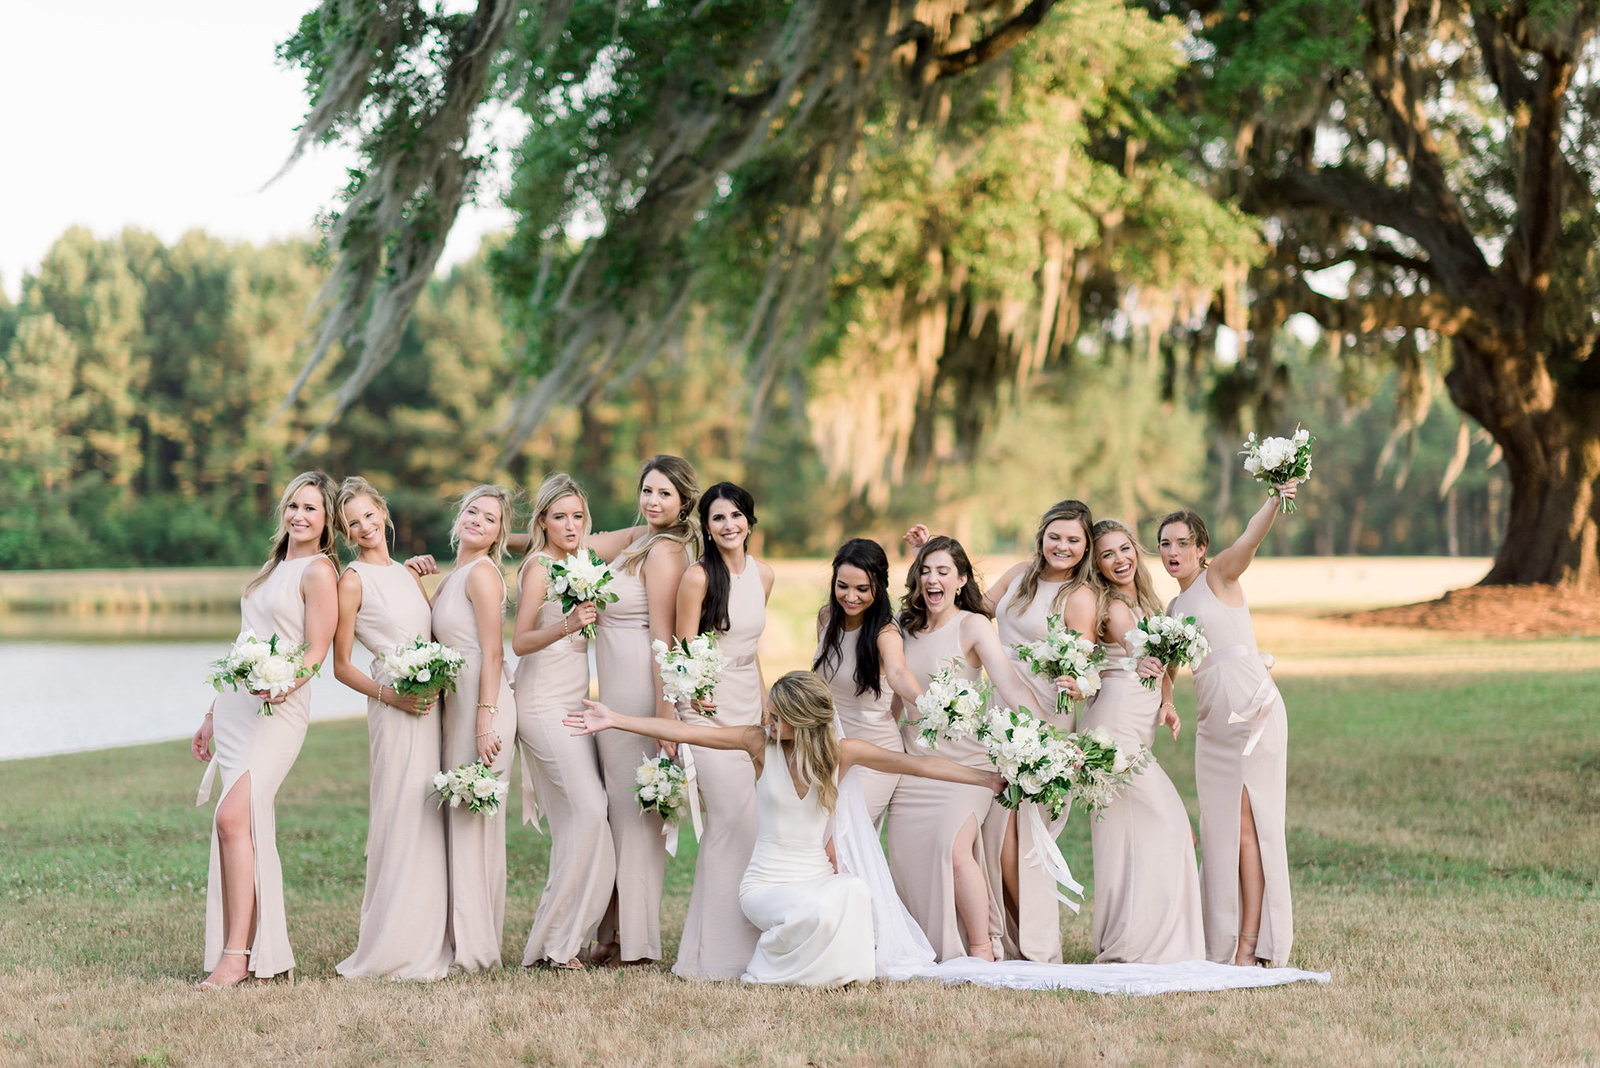 20190526-Pura-Soul-Photo-Caroline-Daniel-Wedding-633